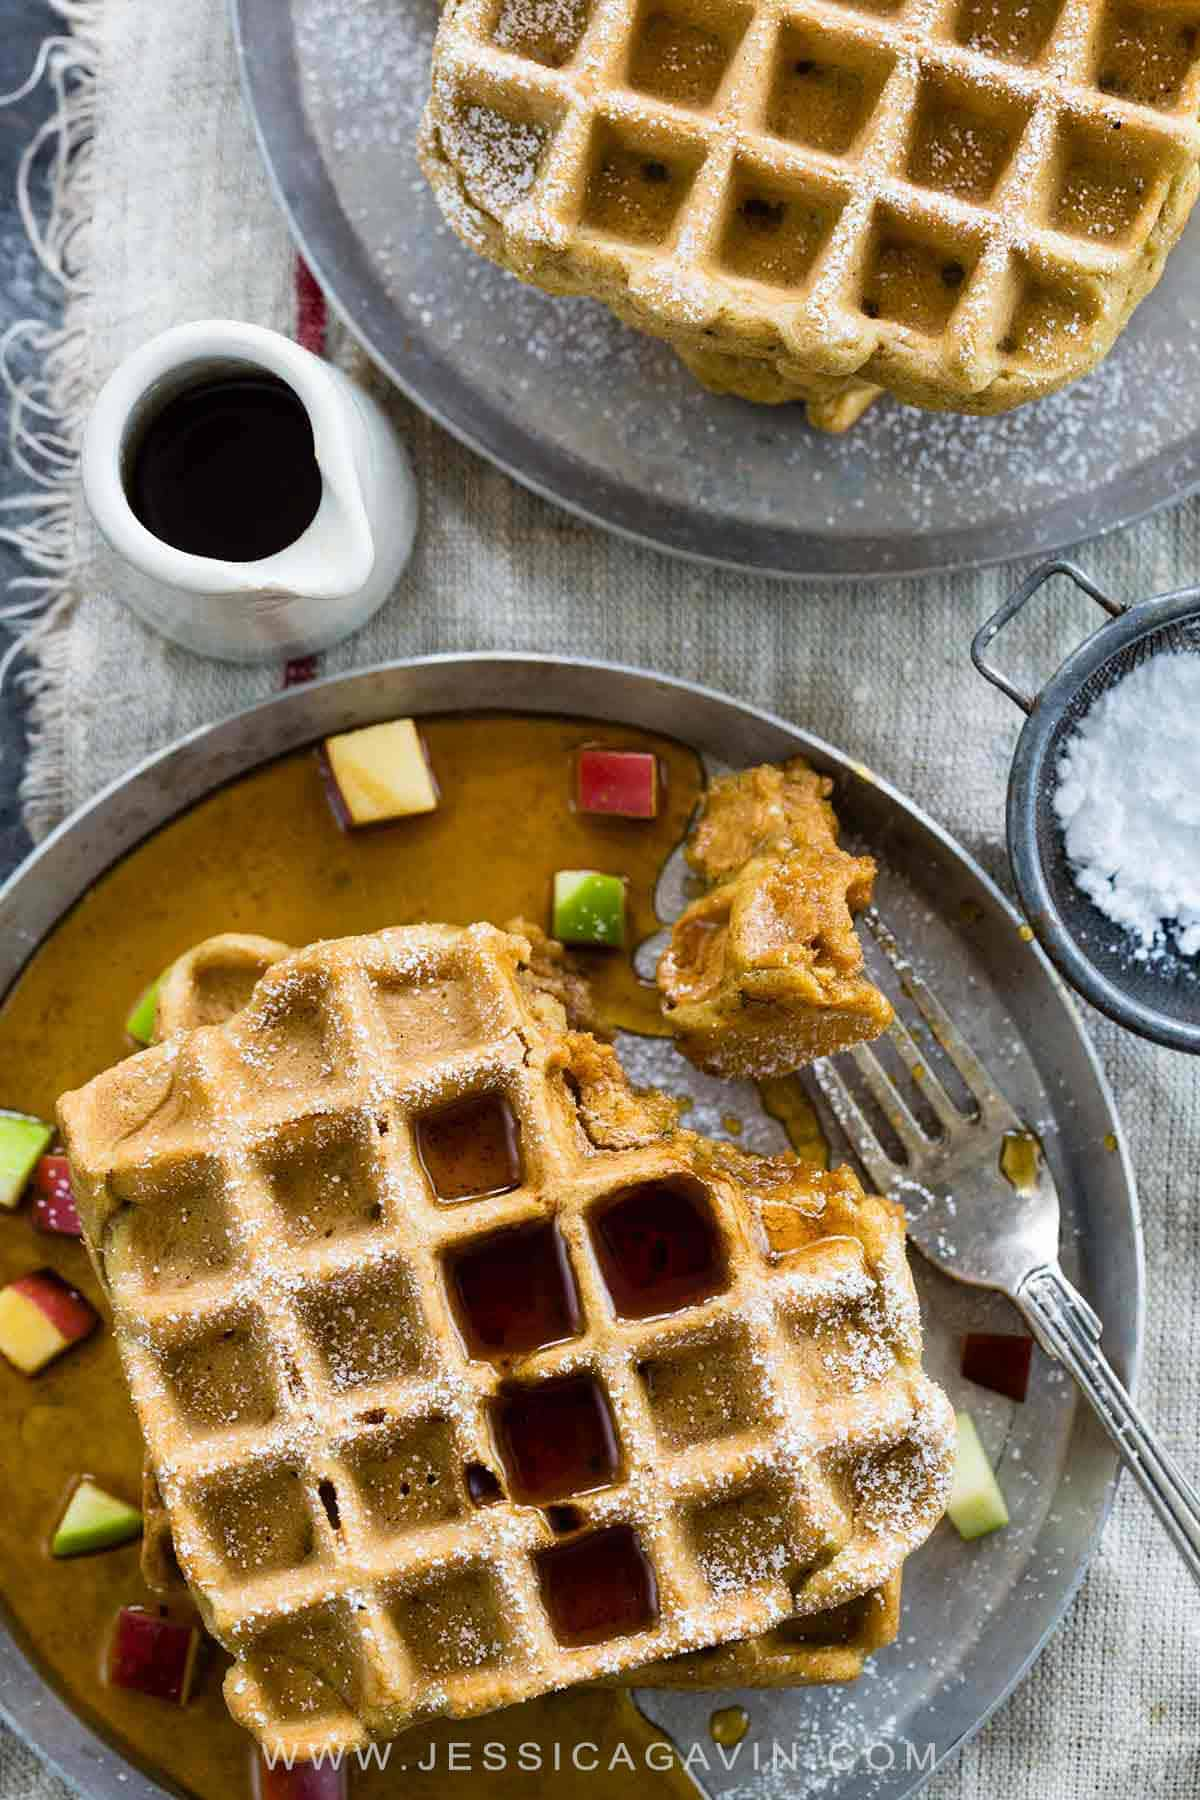 Gluten free waffles with apples and cinnamon make for an easy breakfast solution! Plus, they can be frozen and toasted later for an easy make-ahead meal. #glutenfree #breakfast #waffles